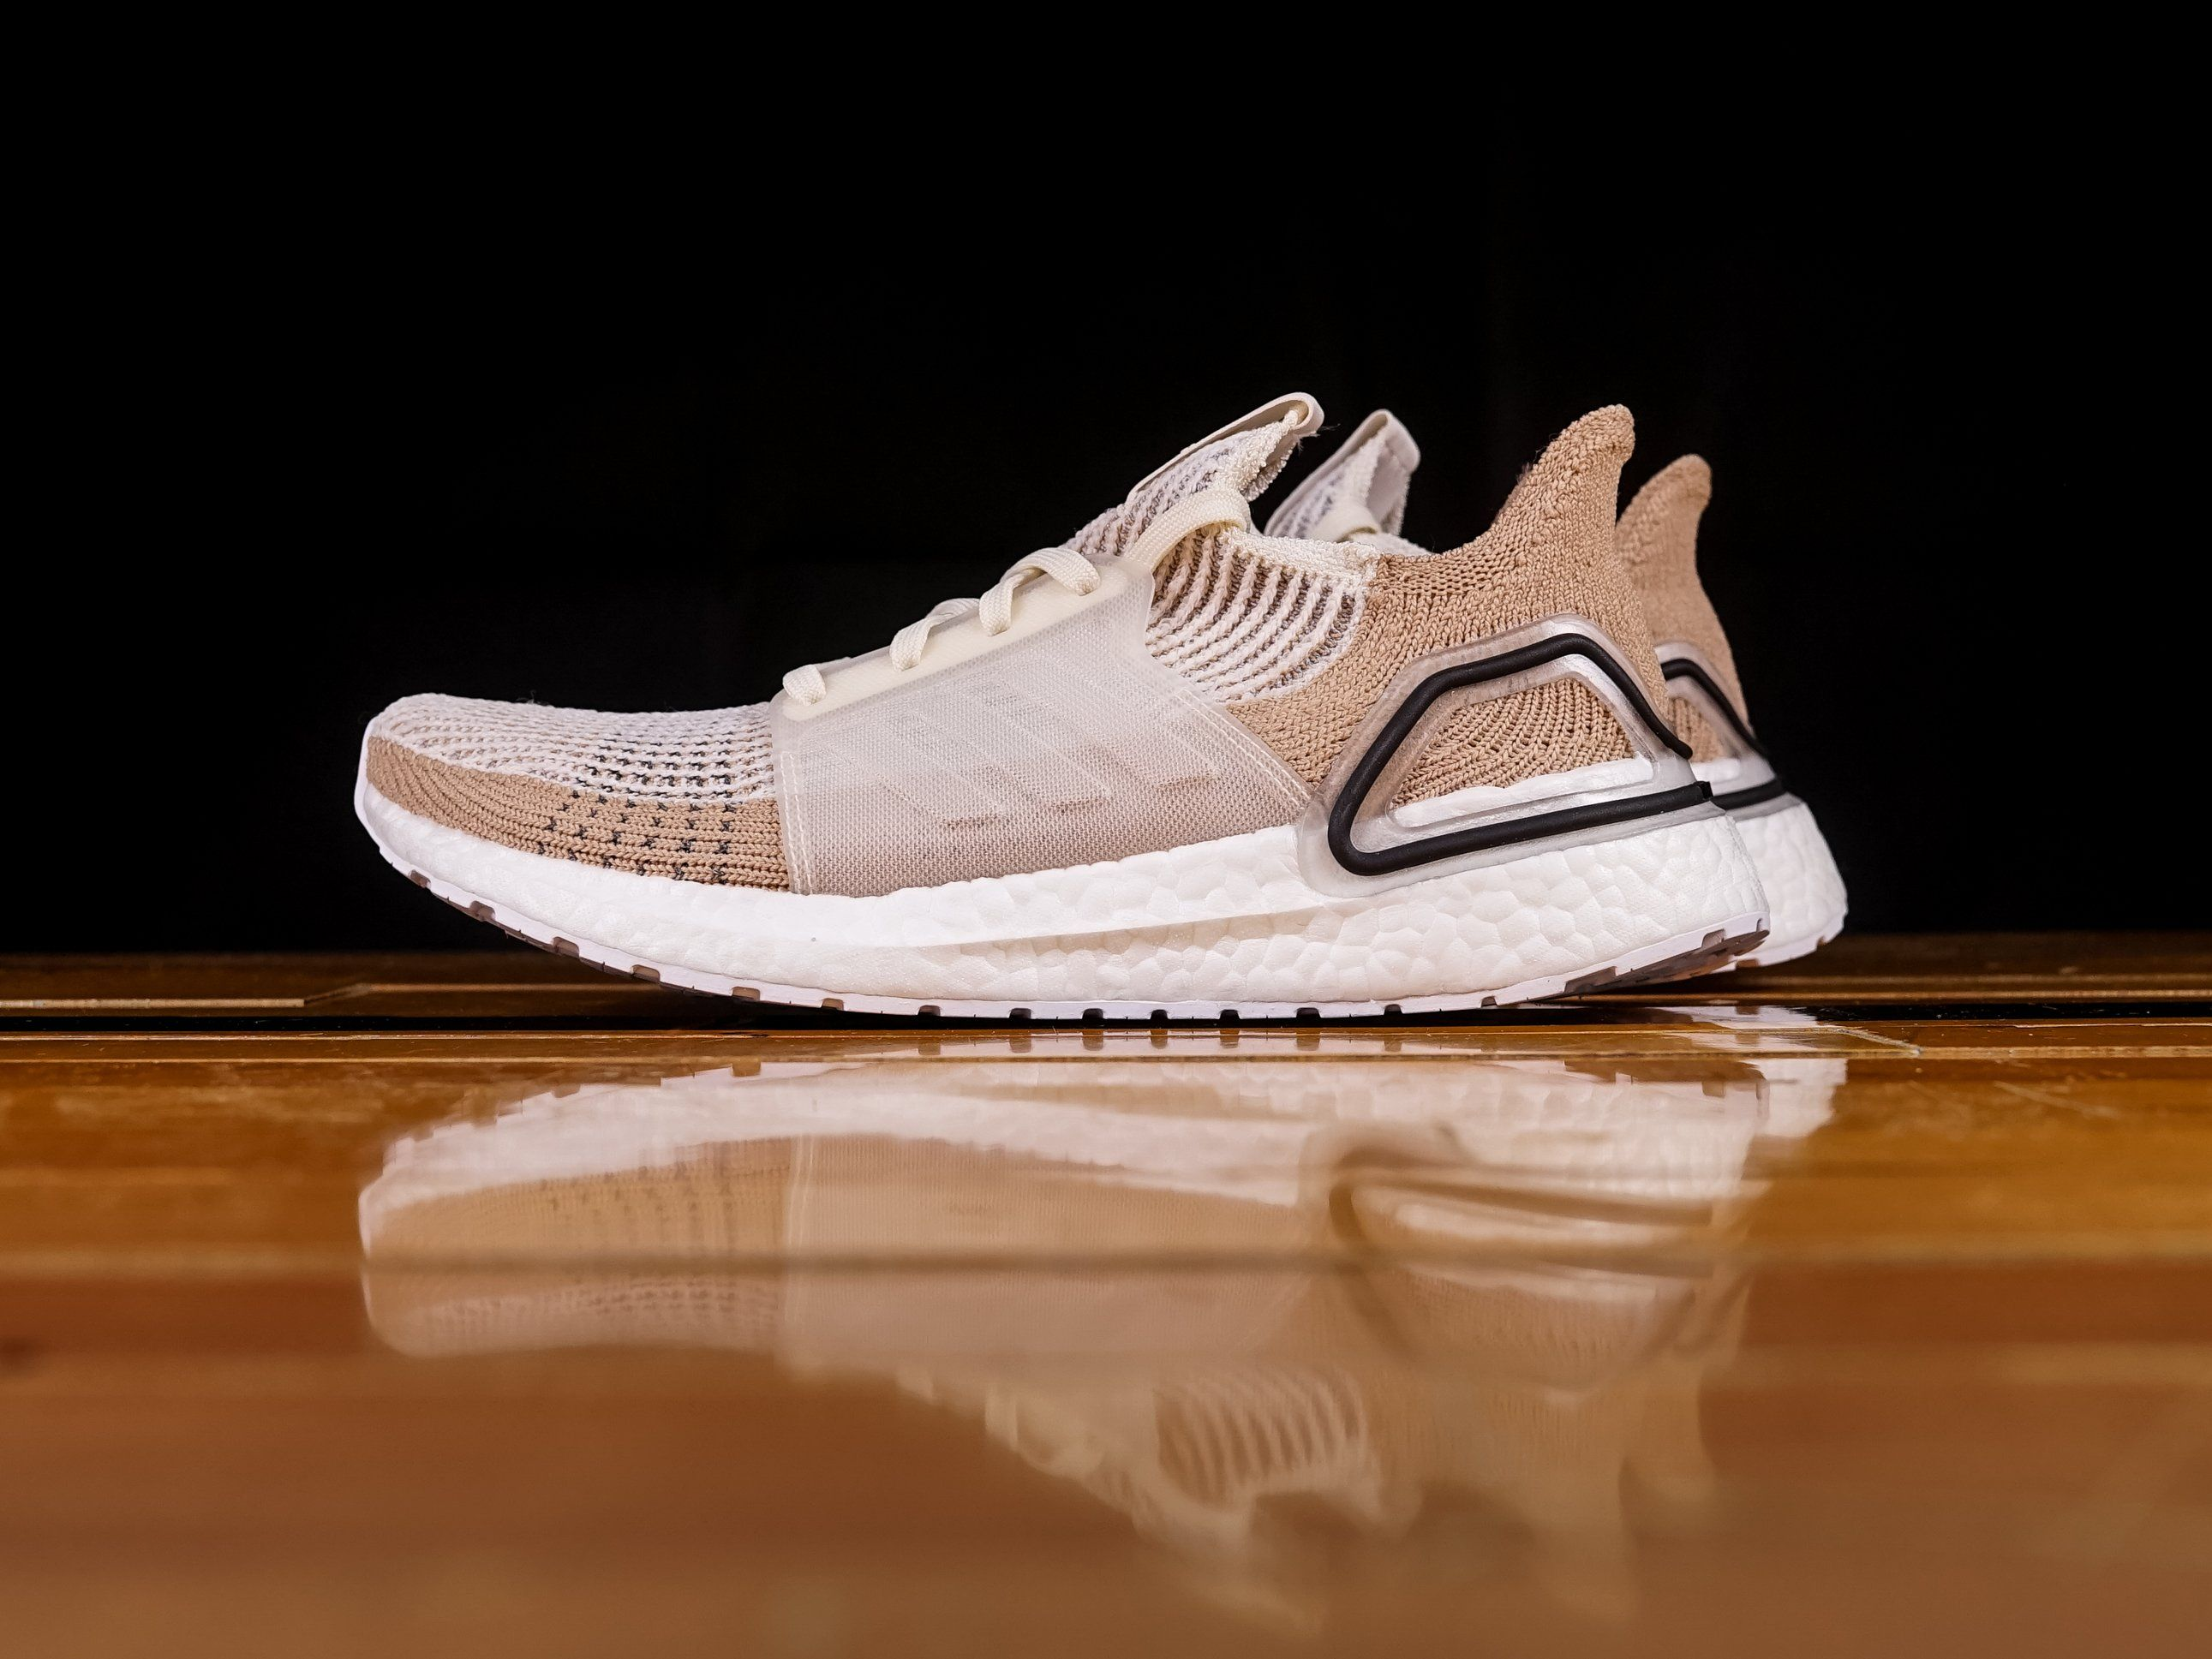 Women's Adidas UltraBoost 19 [B75878] | Adidas ultra boost ...